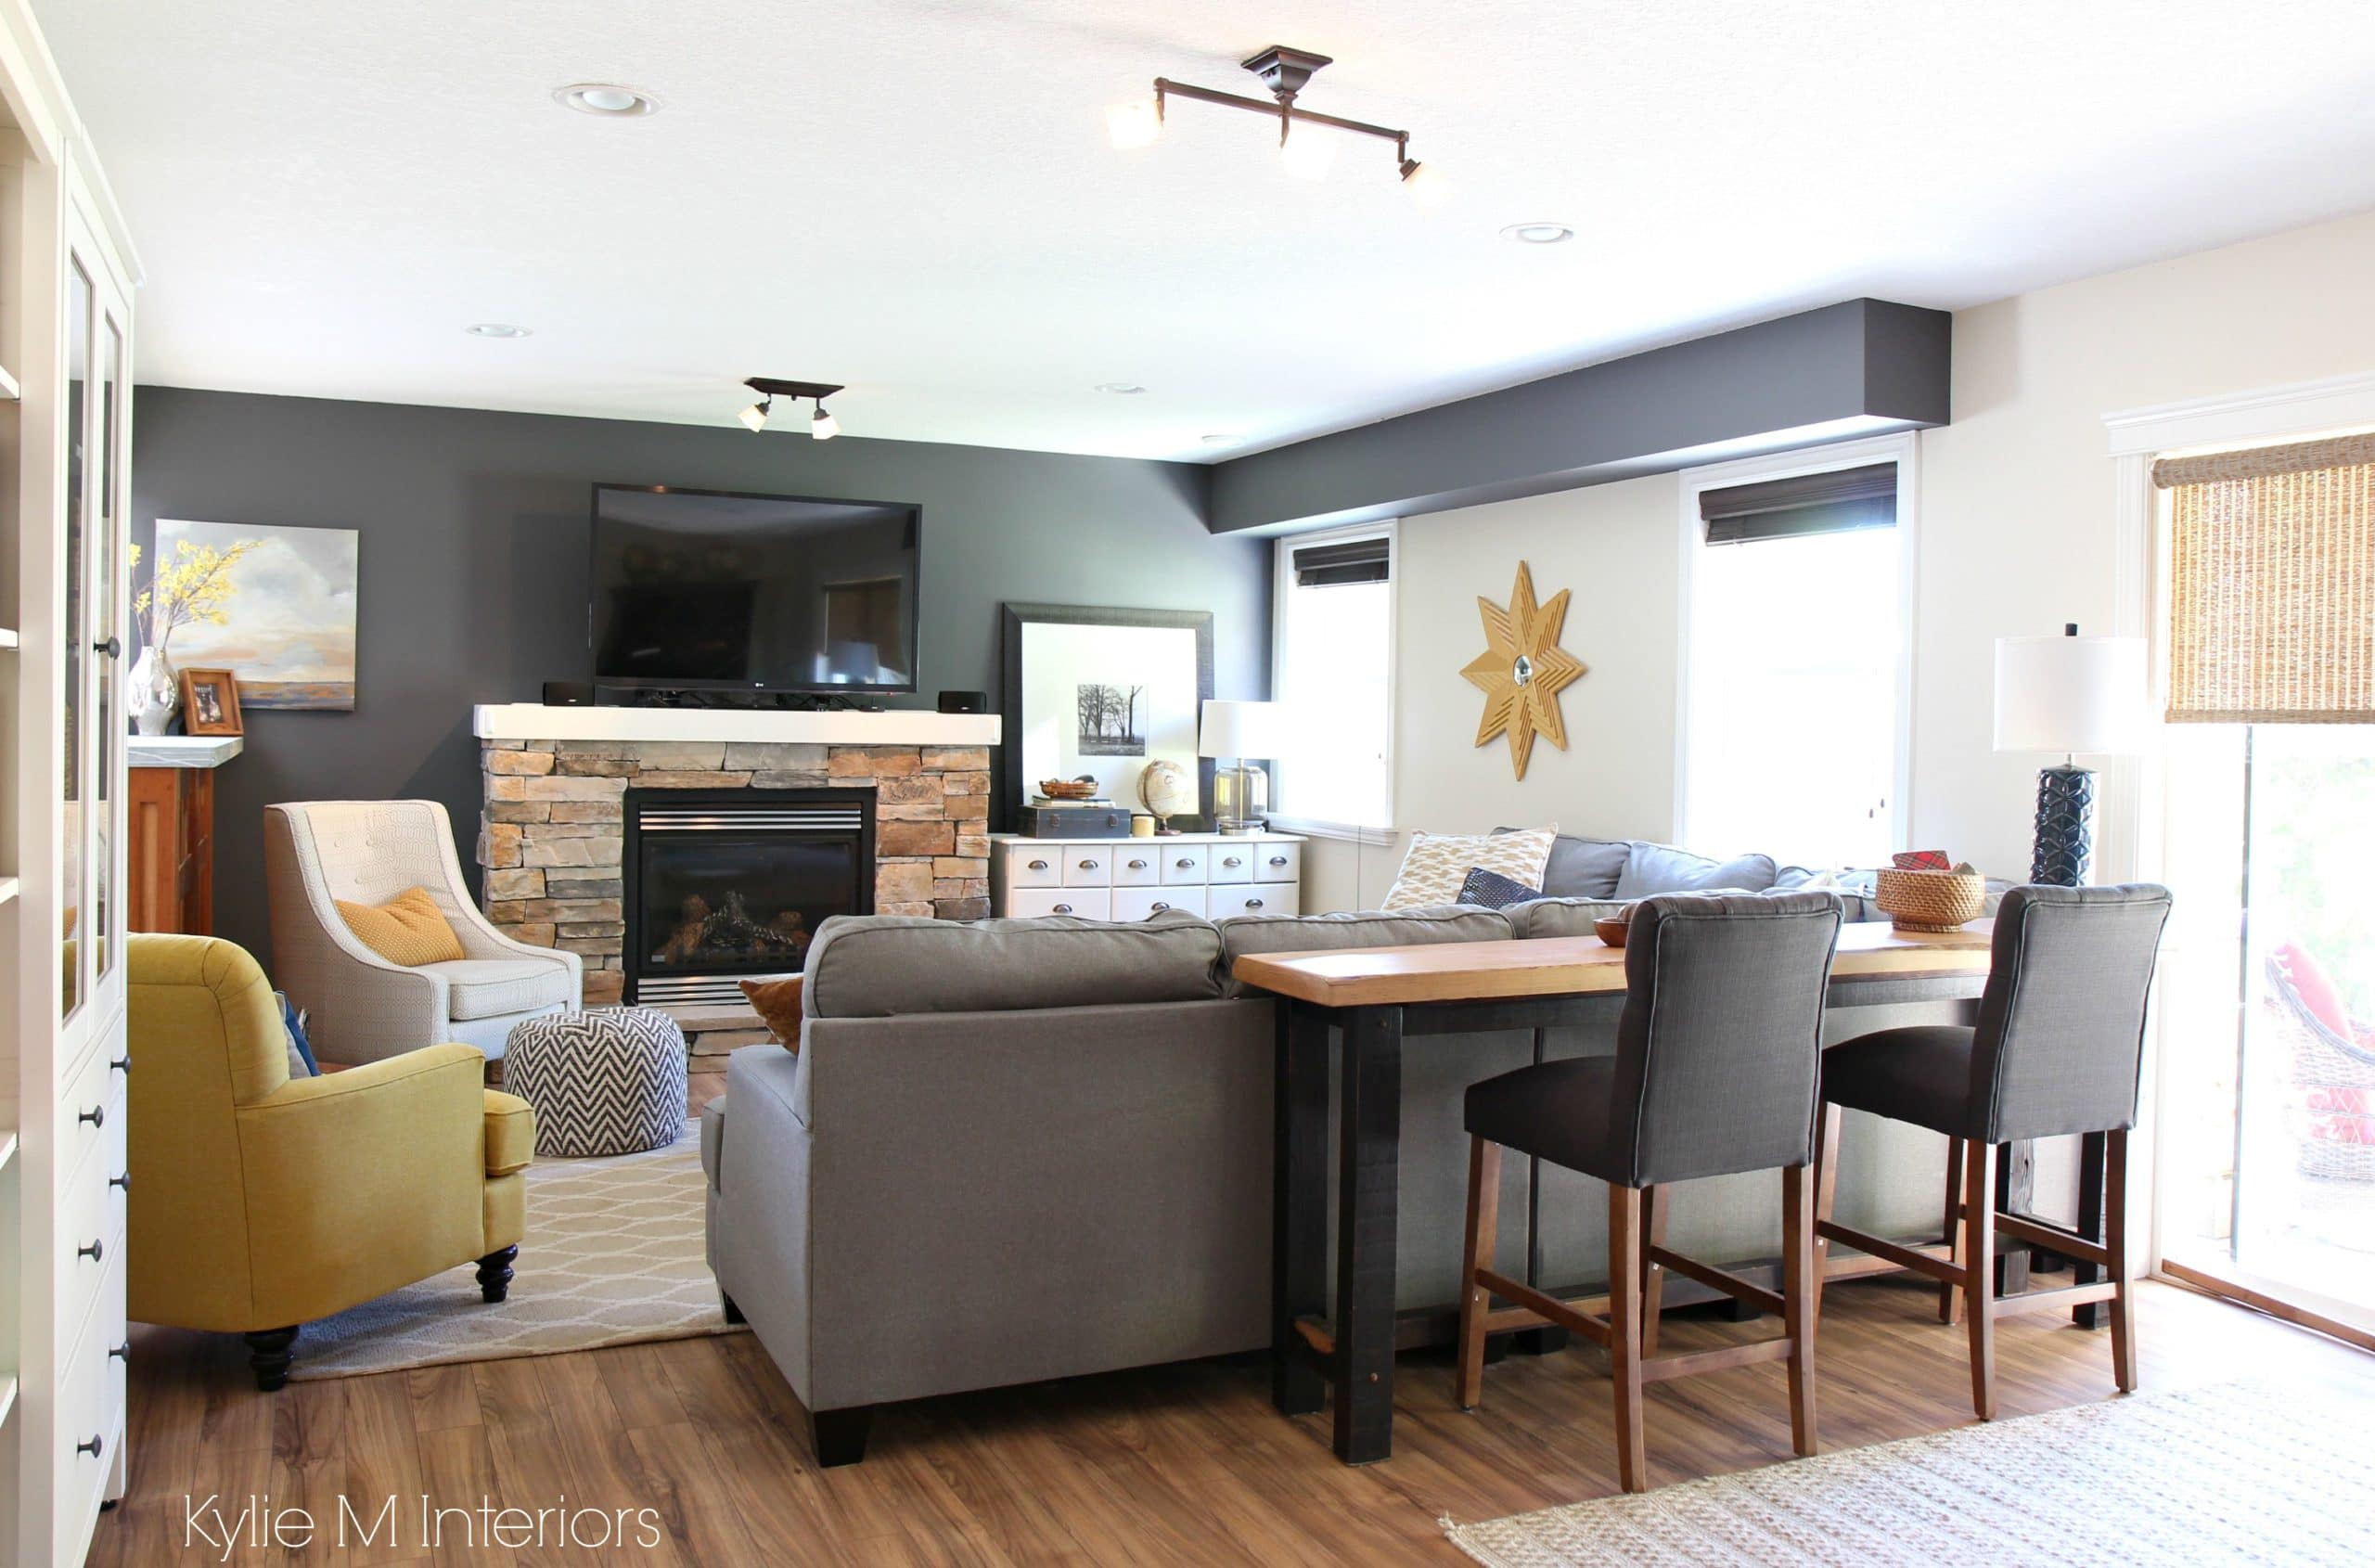 Family Room Decorating Ideas With Tv Over Stone Fireplace